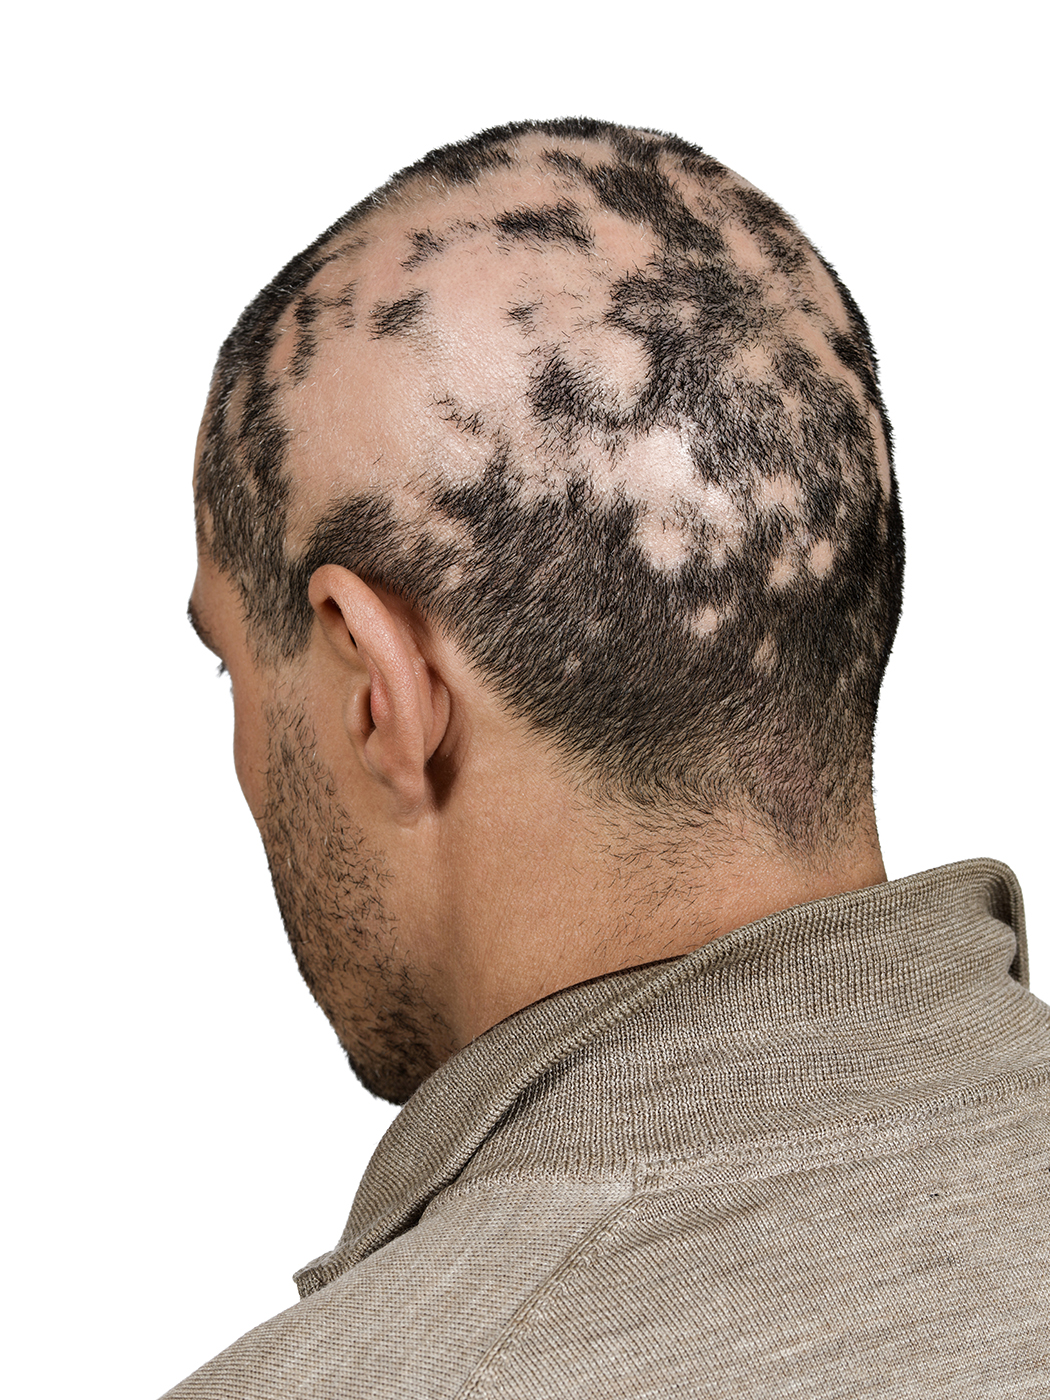 Men S Hair Loss What You Need To Know